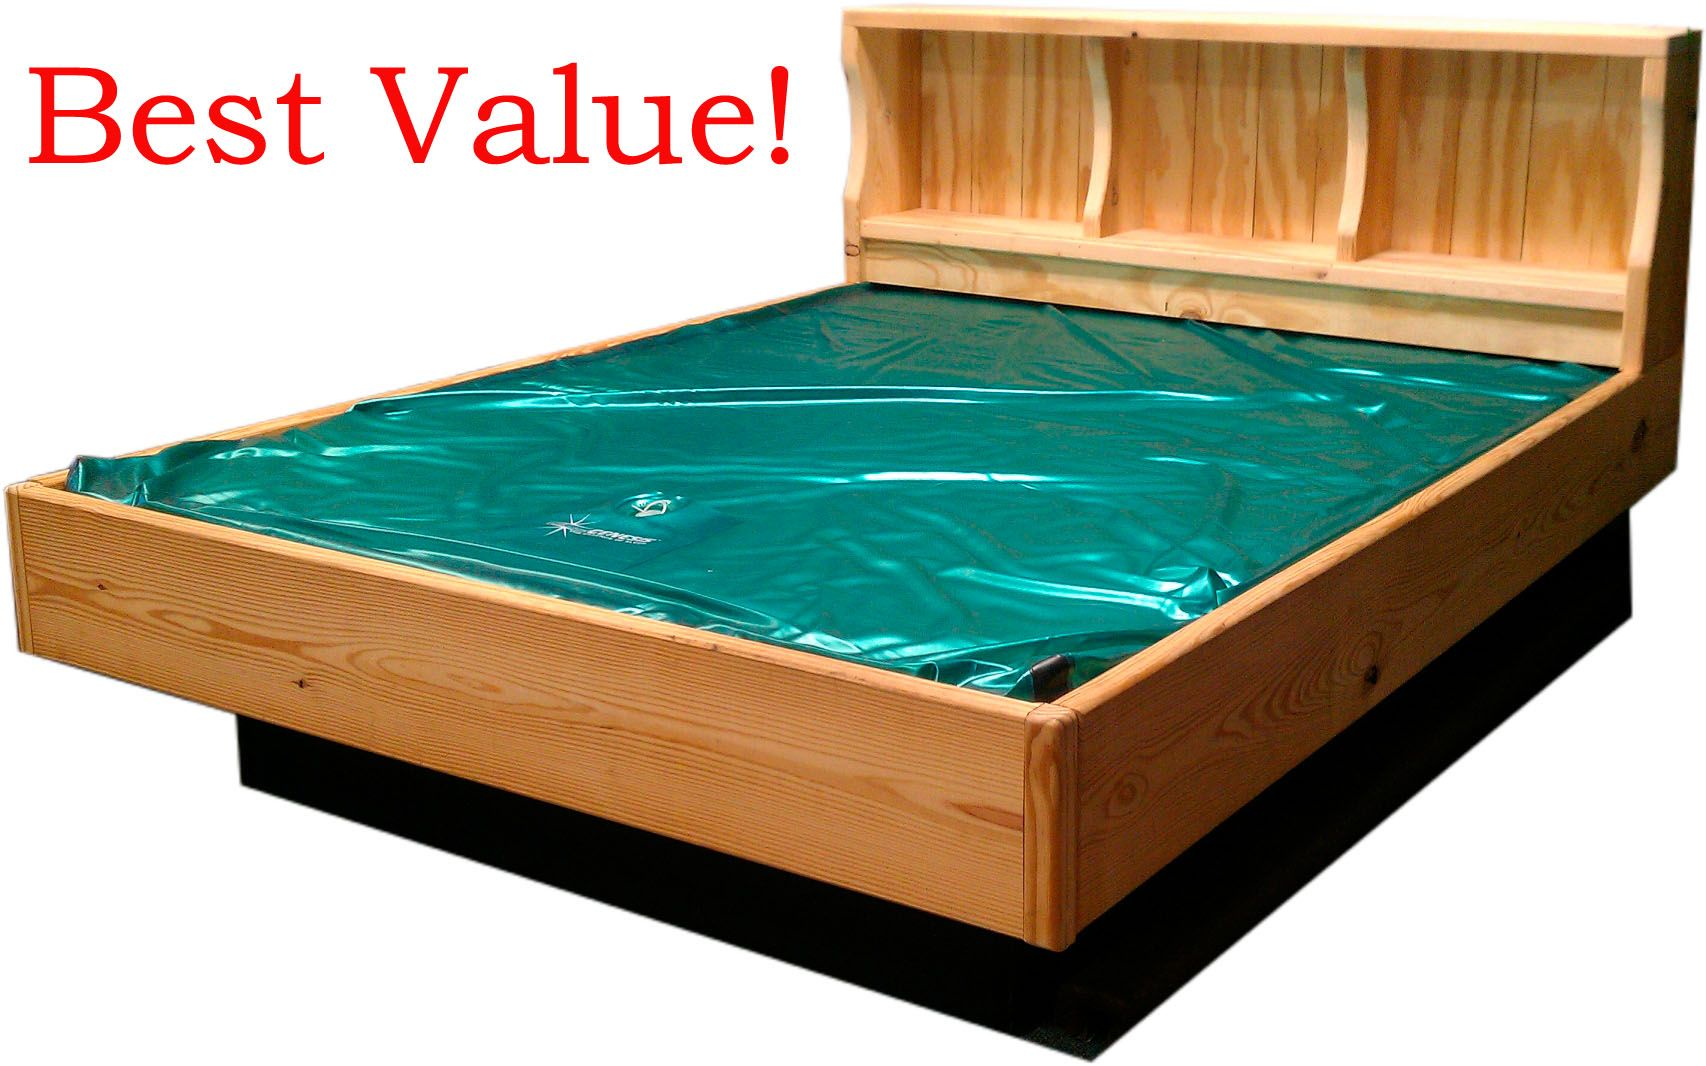 All Beds Include A Free Flow Waterbed Mattress Stand Up Safety